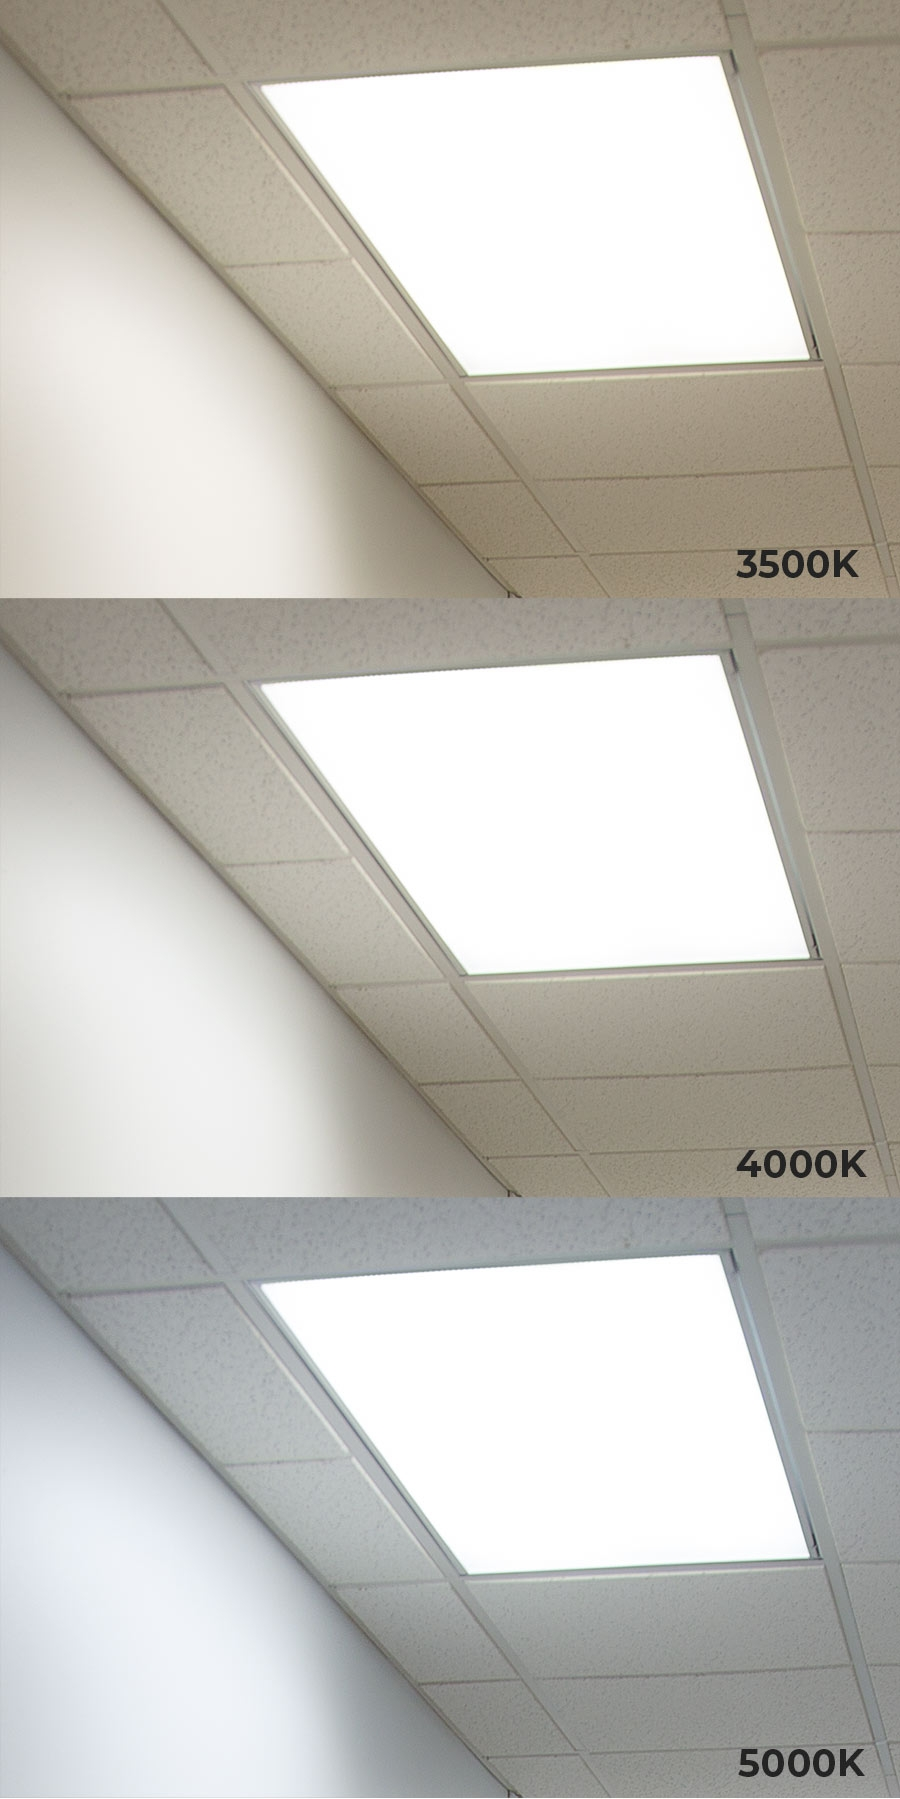 competitive price 4f877 88178 LED Panel Light - 2x4 - 5000 Lumens - 50W Dimmable Even-Glow® Light Fixture  - Drop Ceiling - 5000K/4000K/3500K